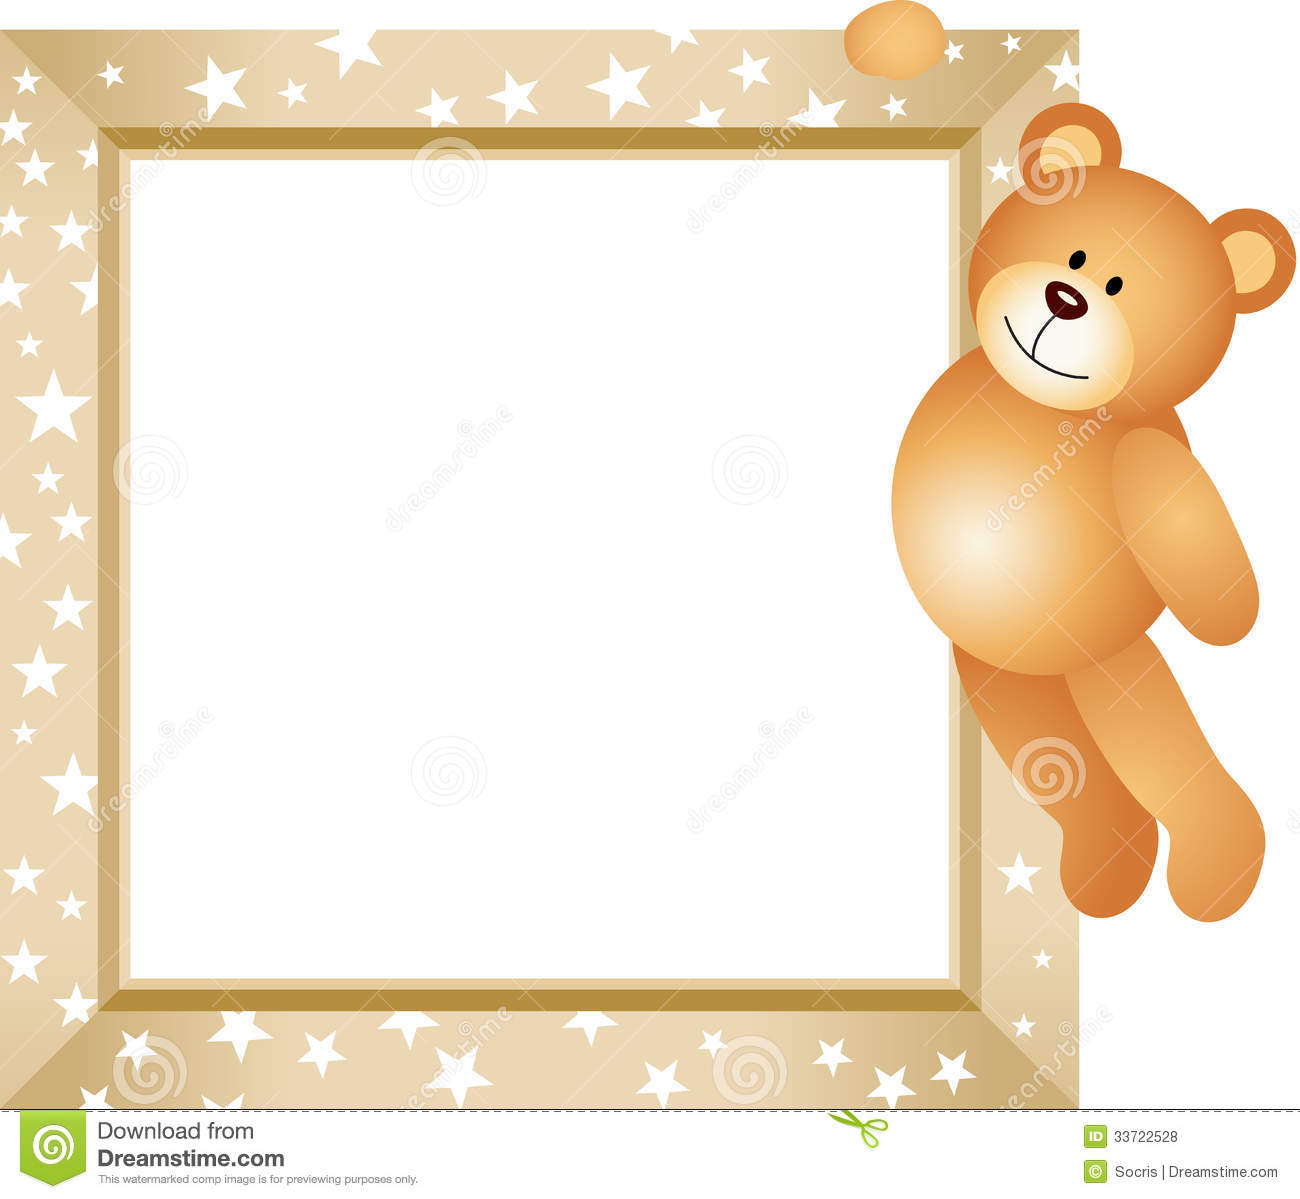 Bear Hanging in the Frame.